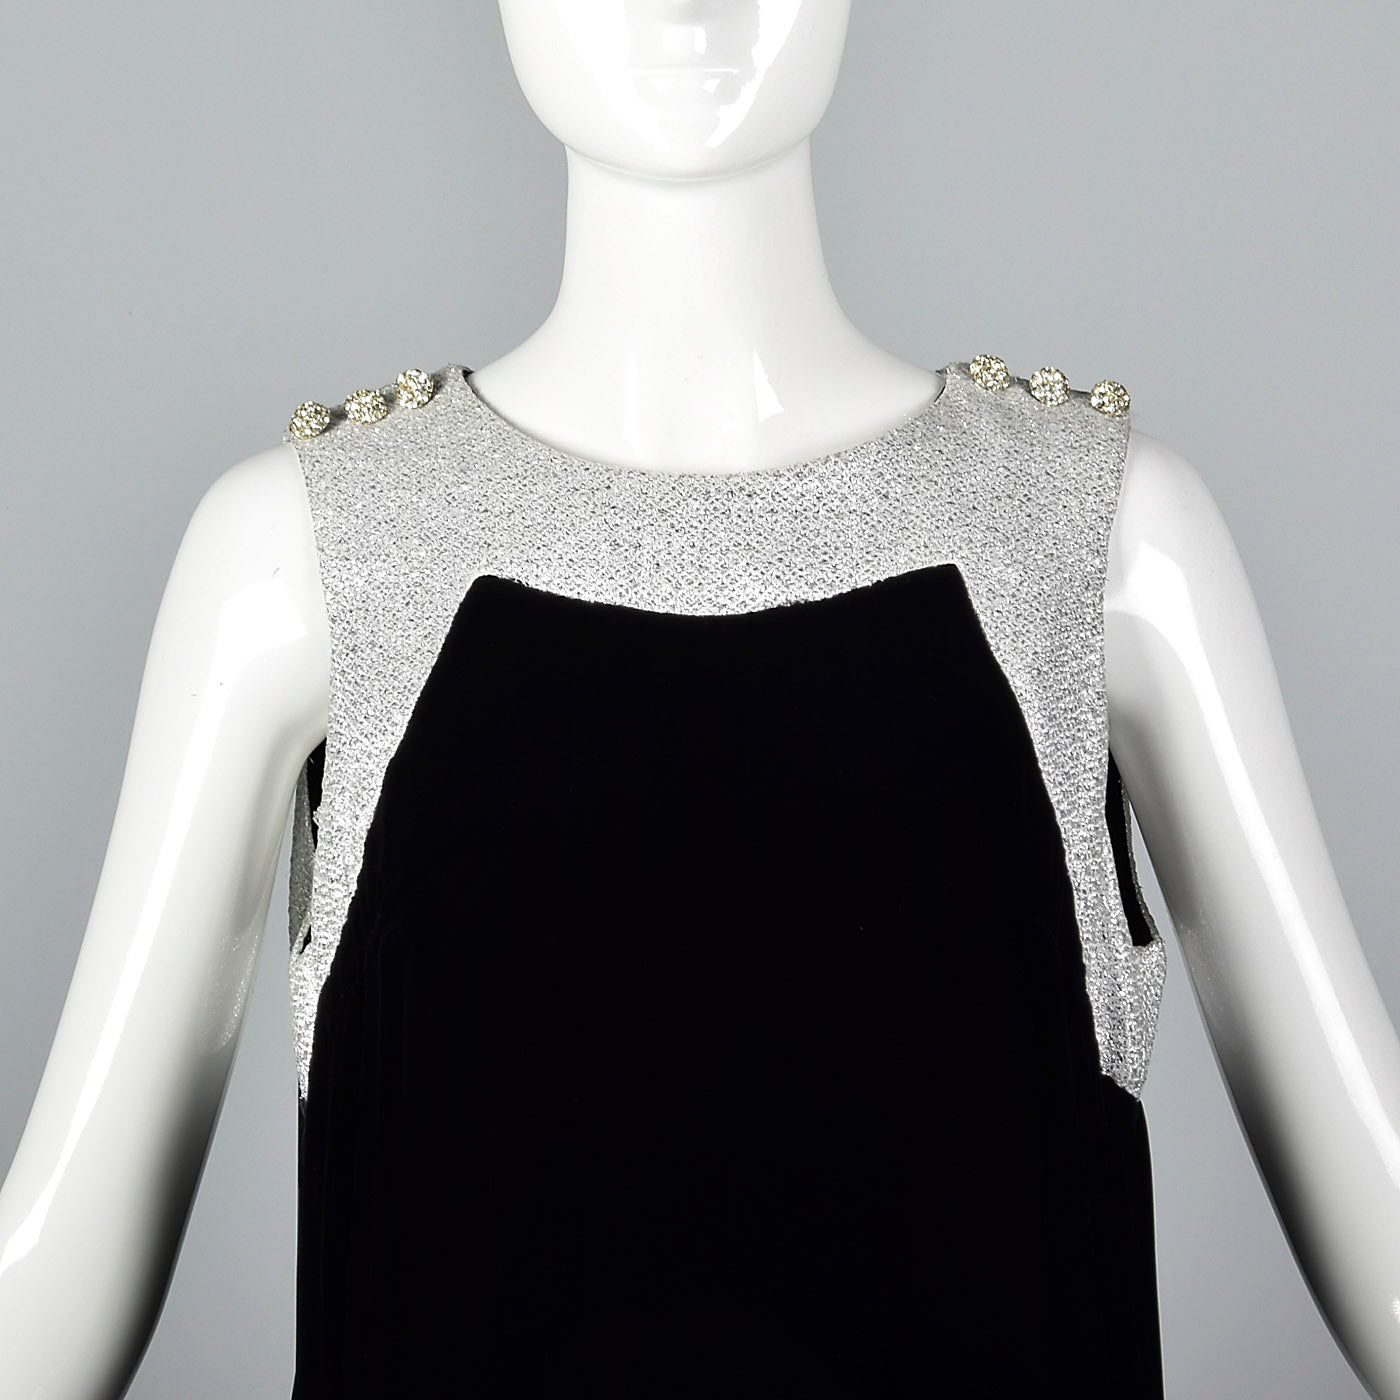 1960s Marshall Field & Co. Black Velvet Dress with Silver Trim